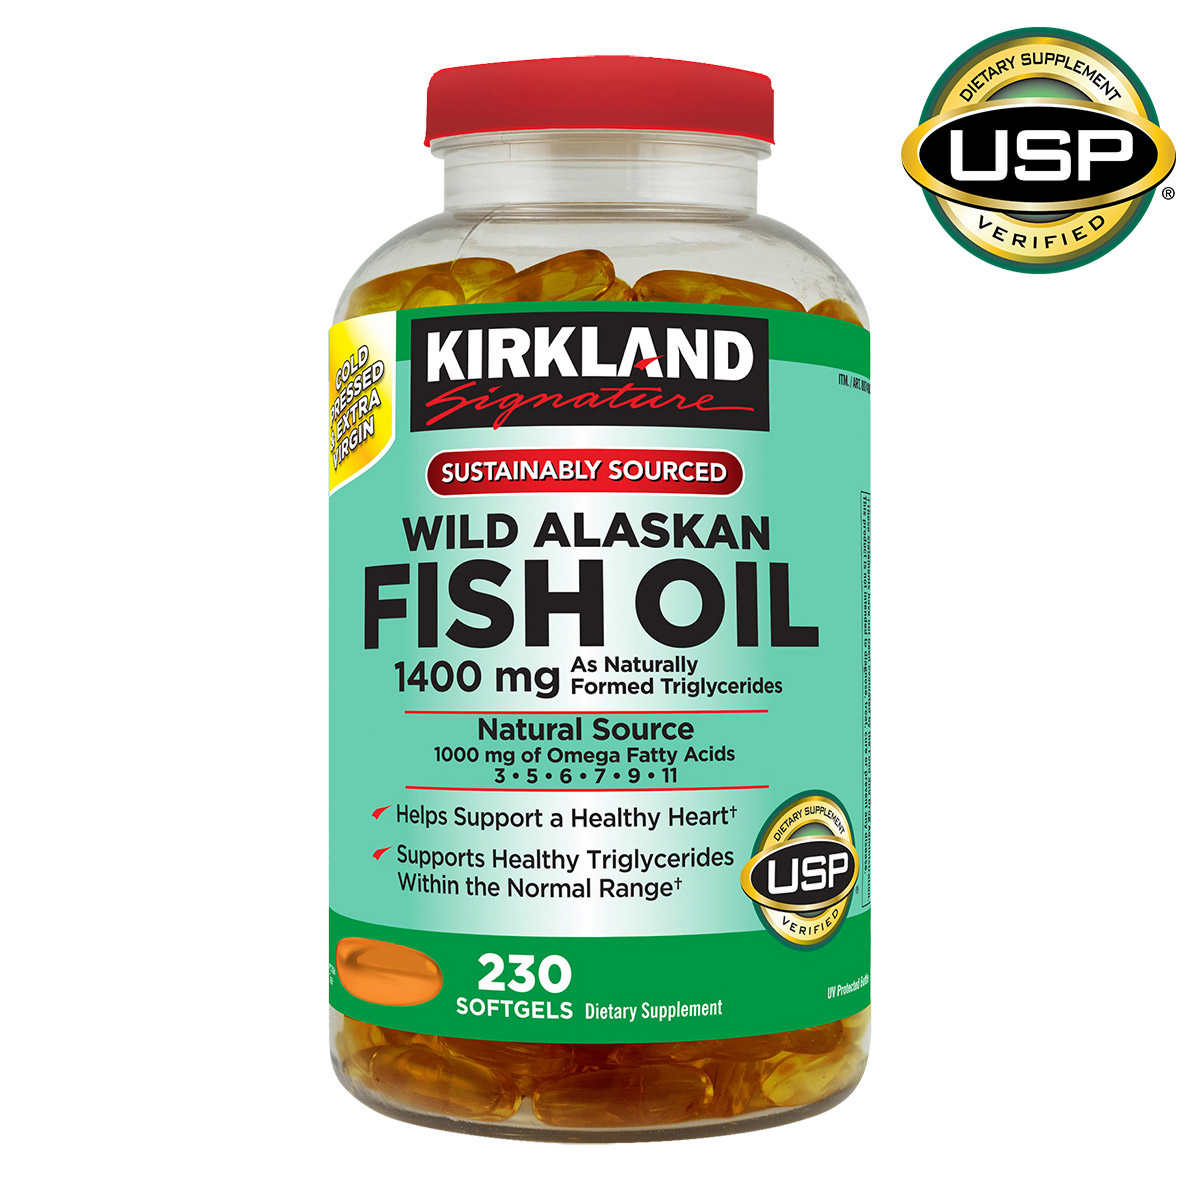 Kirkland Signature Wild Alaskan Fish Oil 1400 Mg 230 Softgels